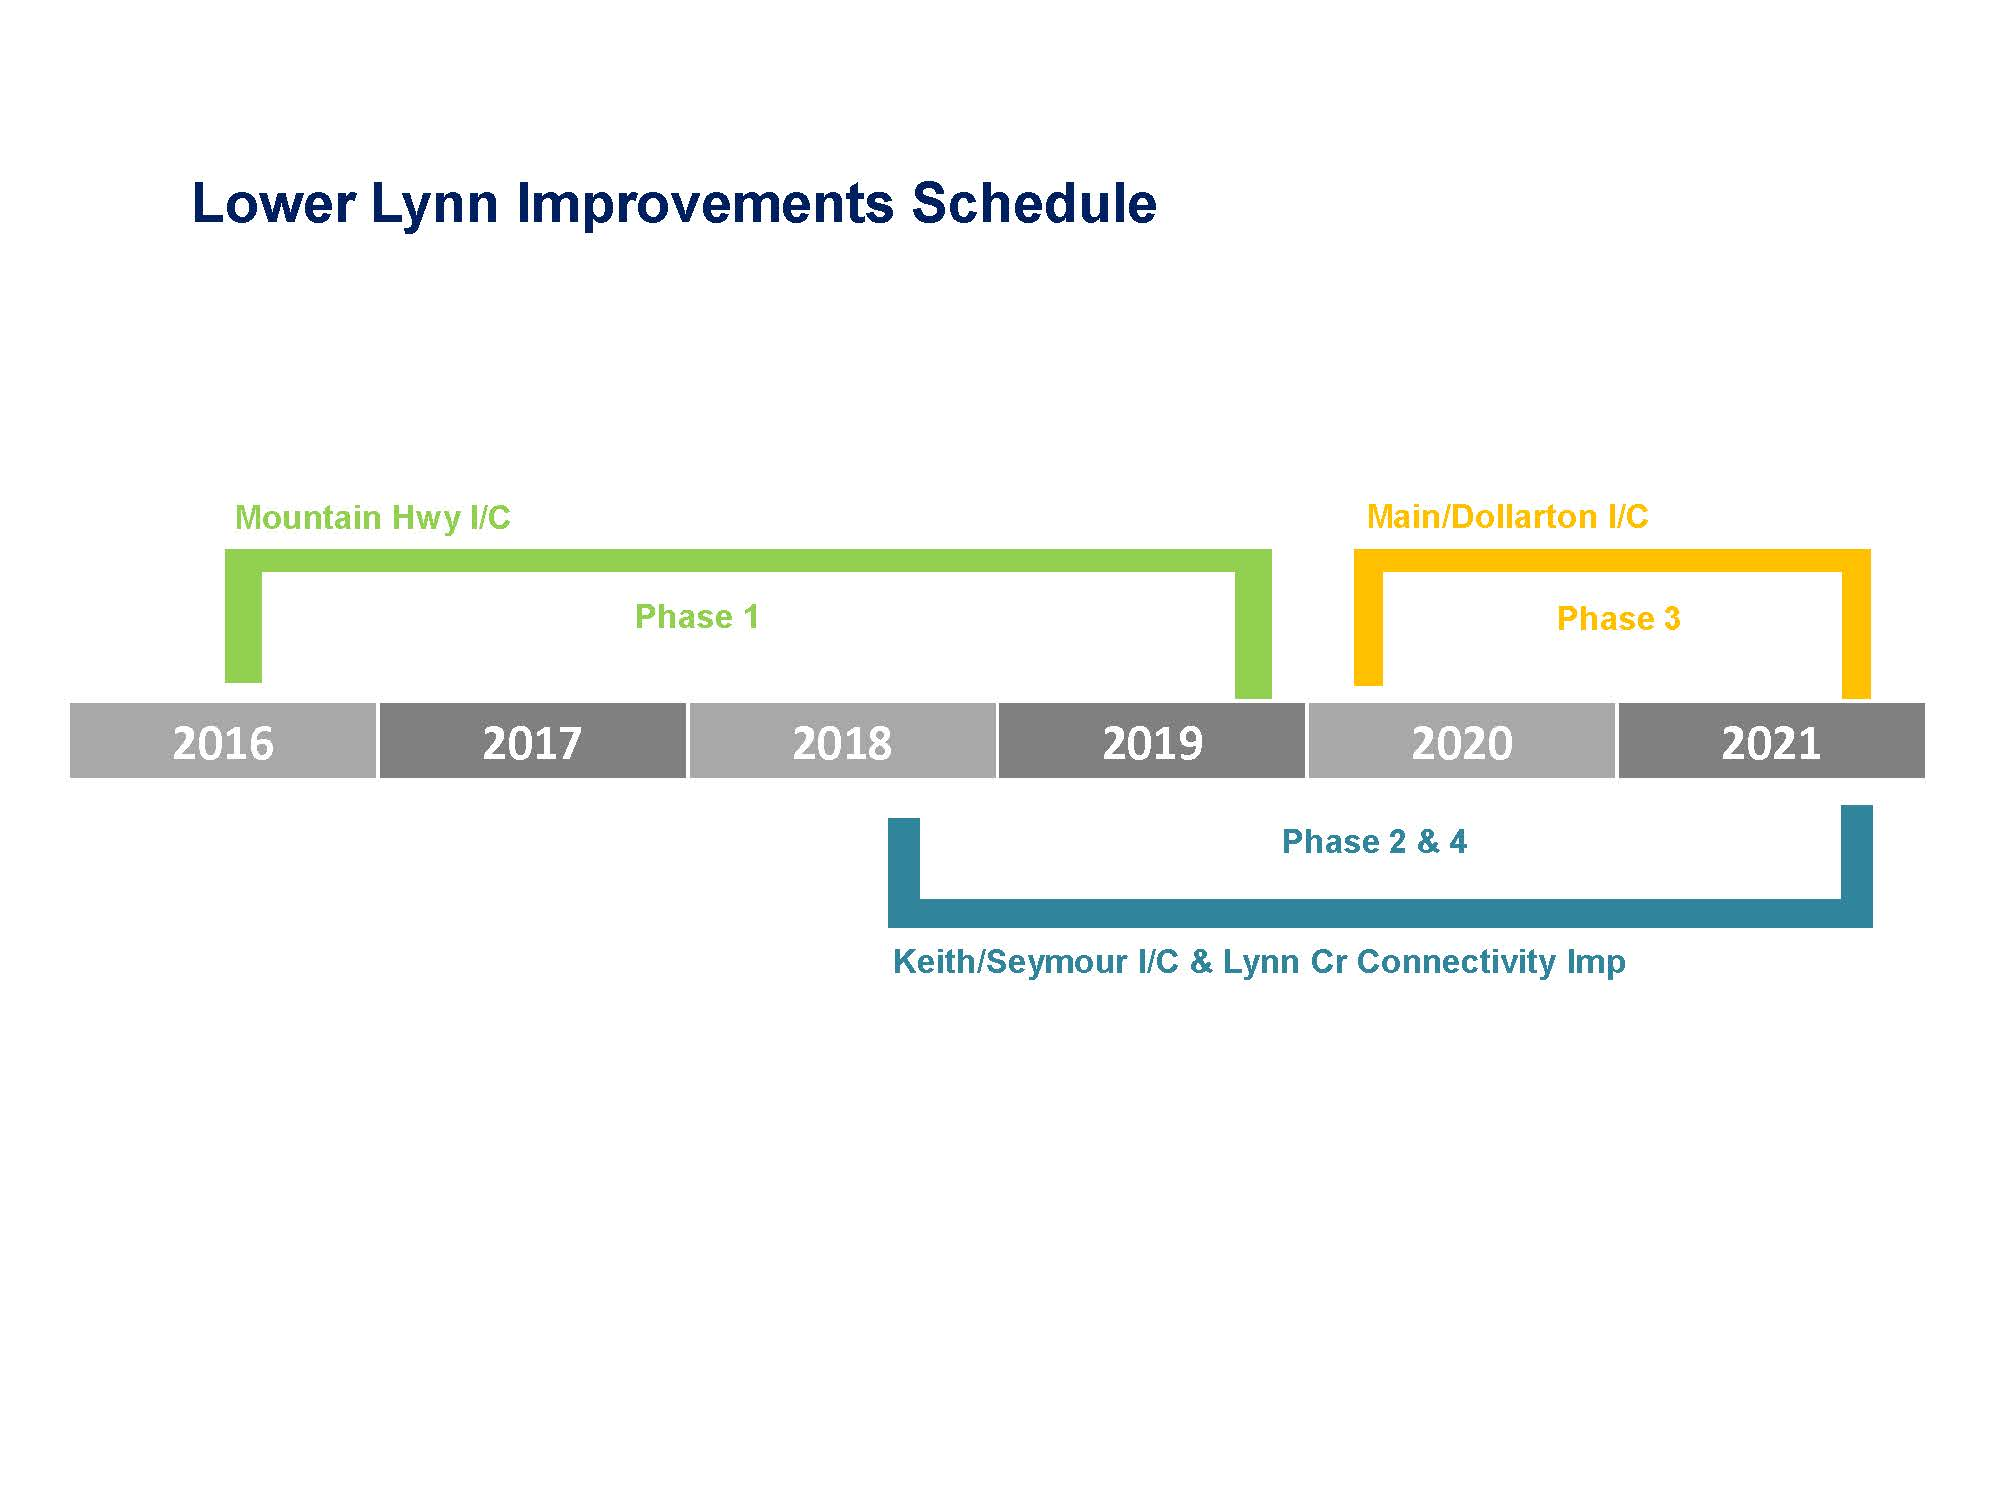 Lower Lynn Lmprovement Schedule